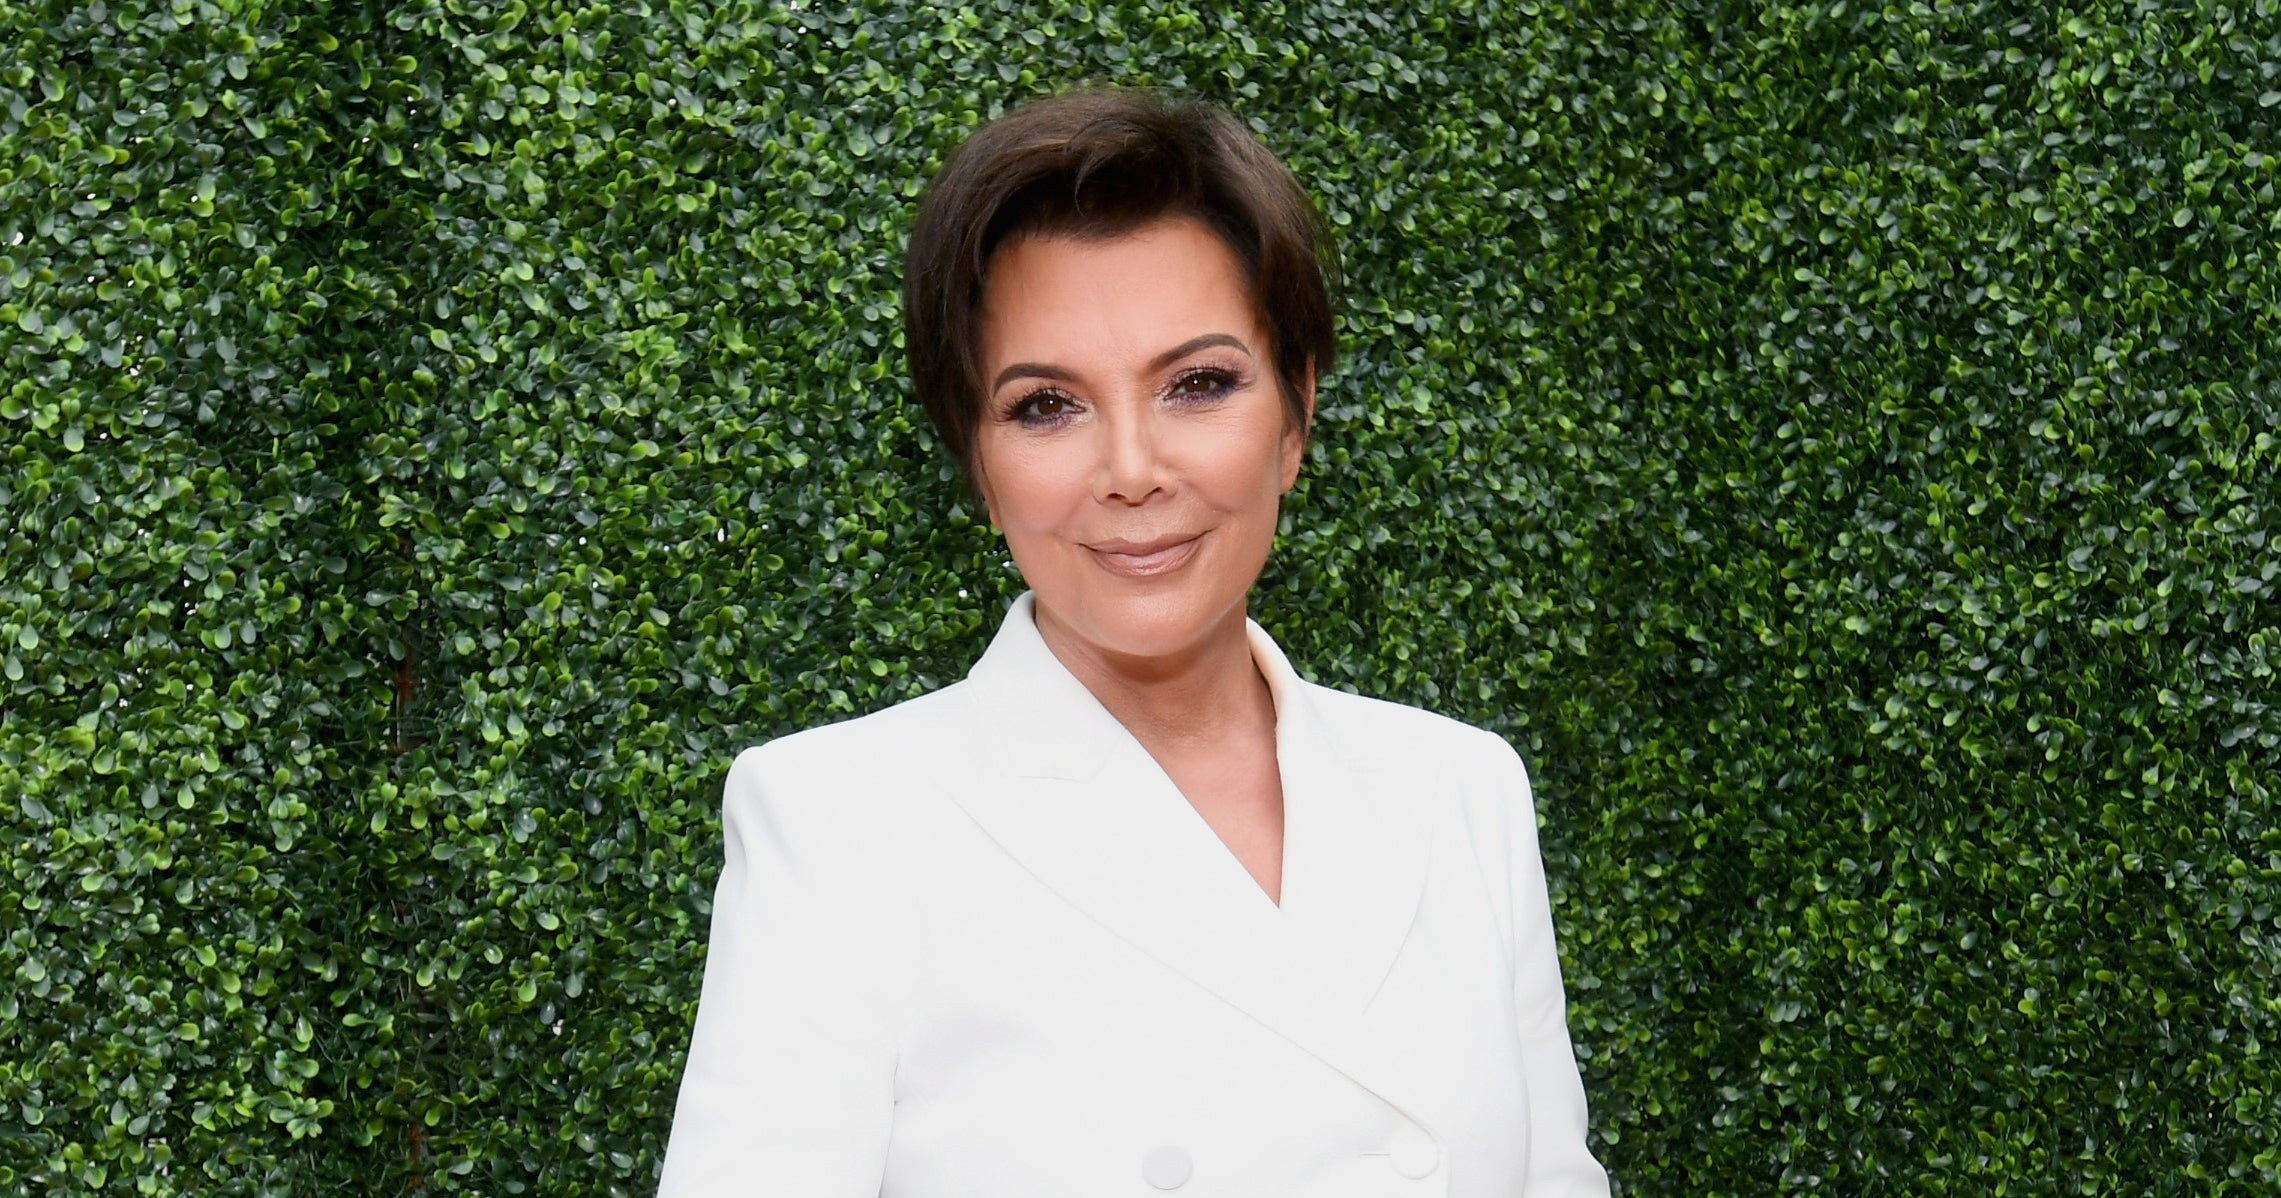 www.refinery29.com: Looks Like Kris Jenner May Be Coming Out With Her Own Skin-Care Line